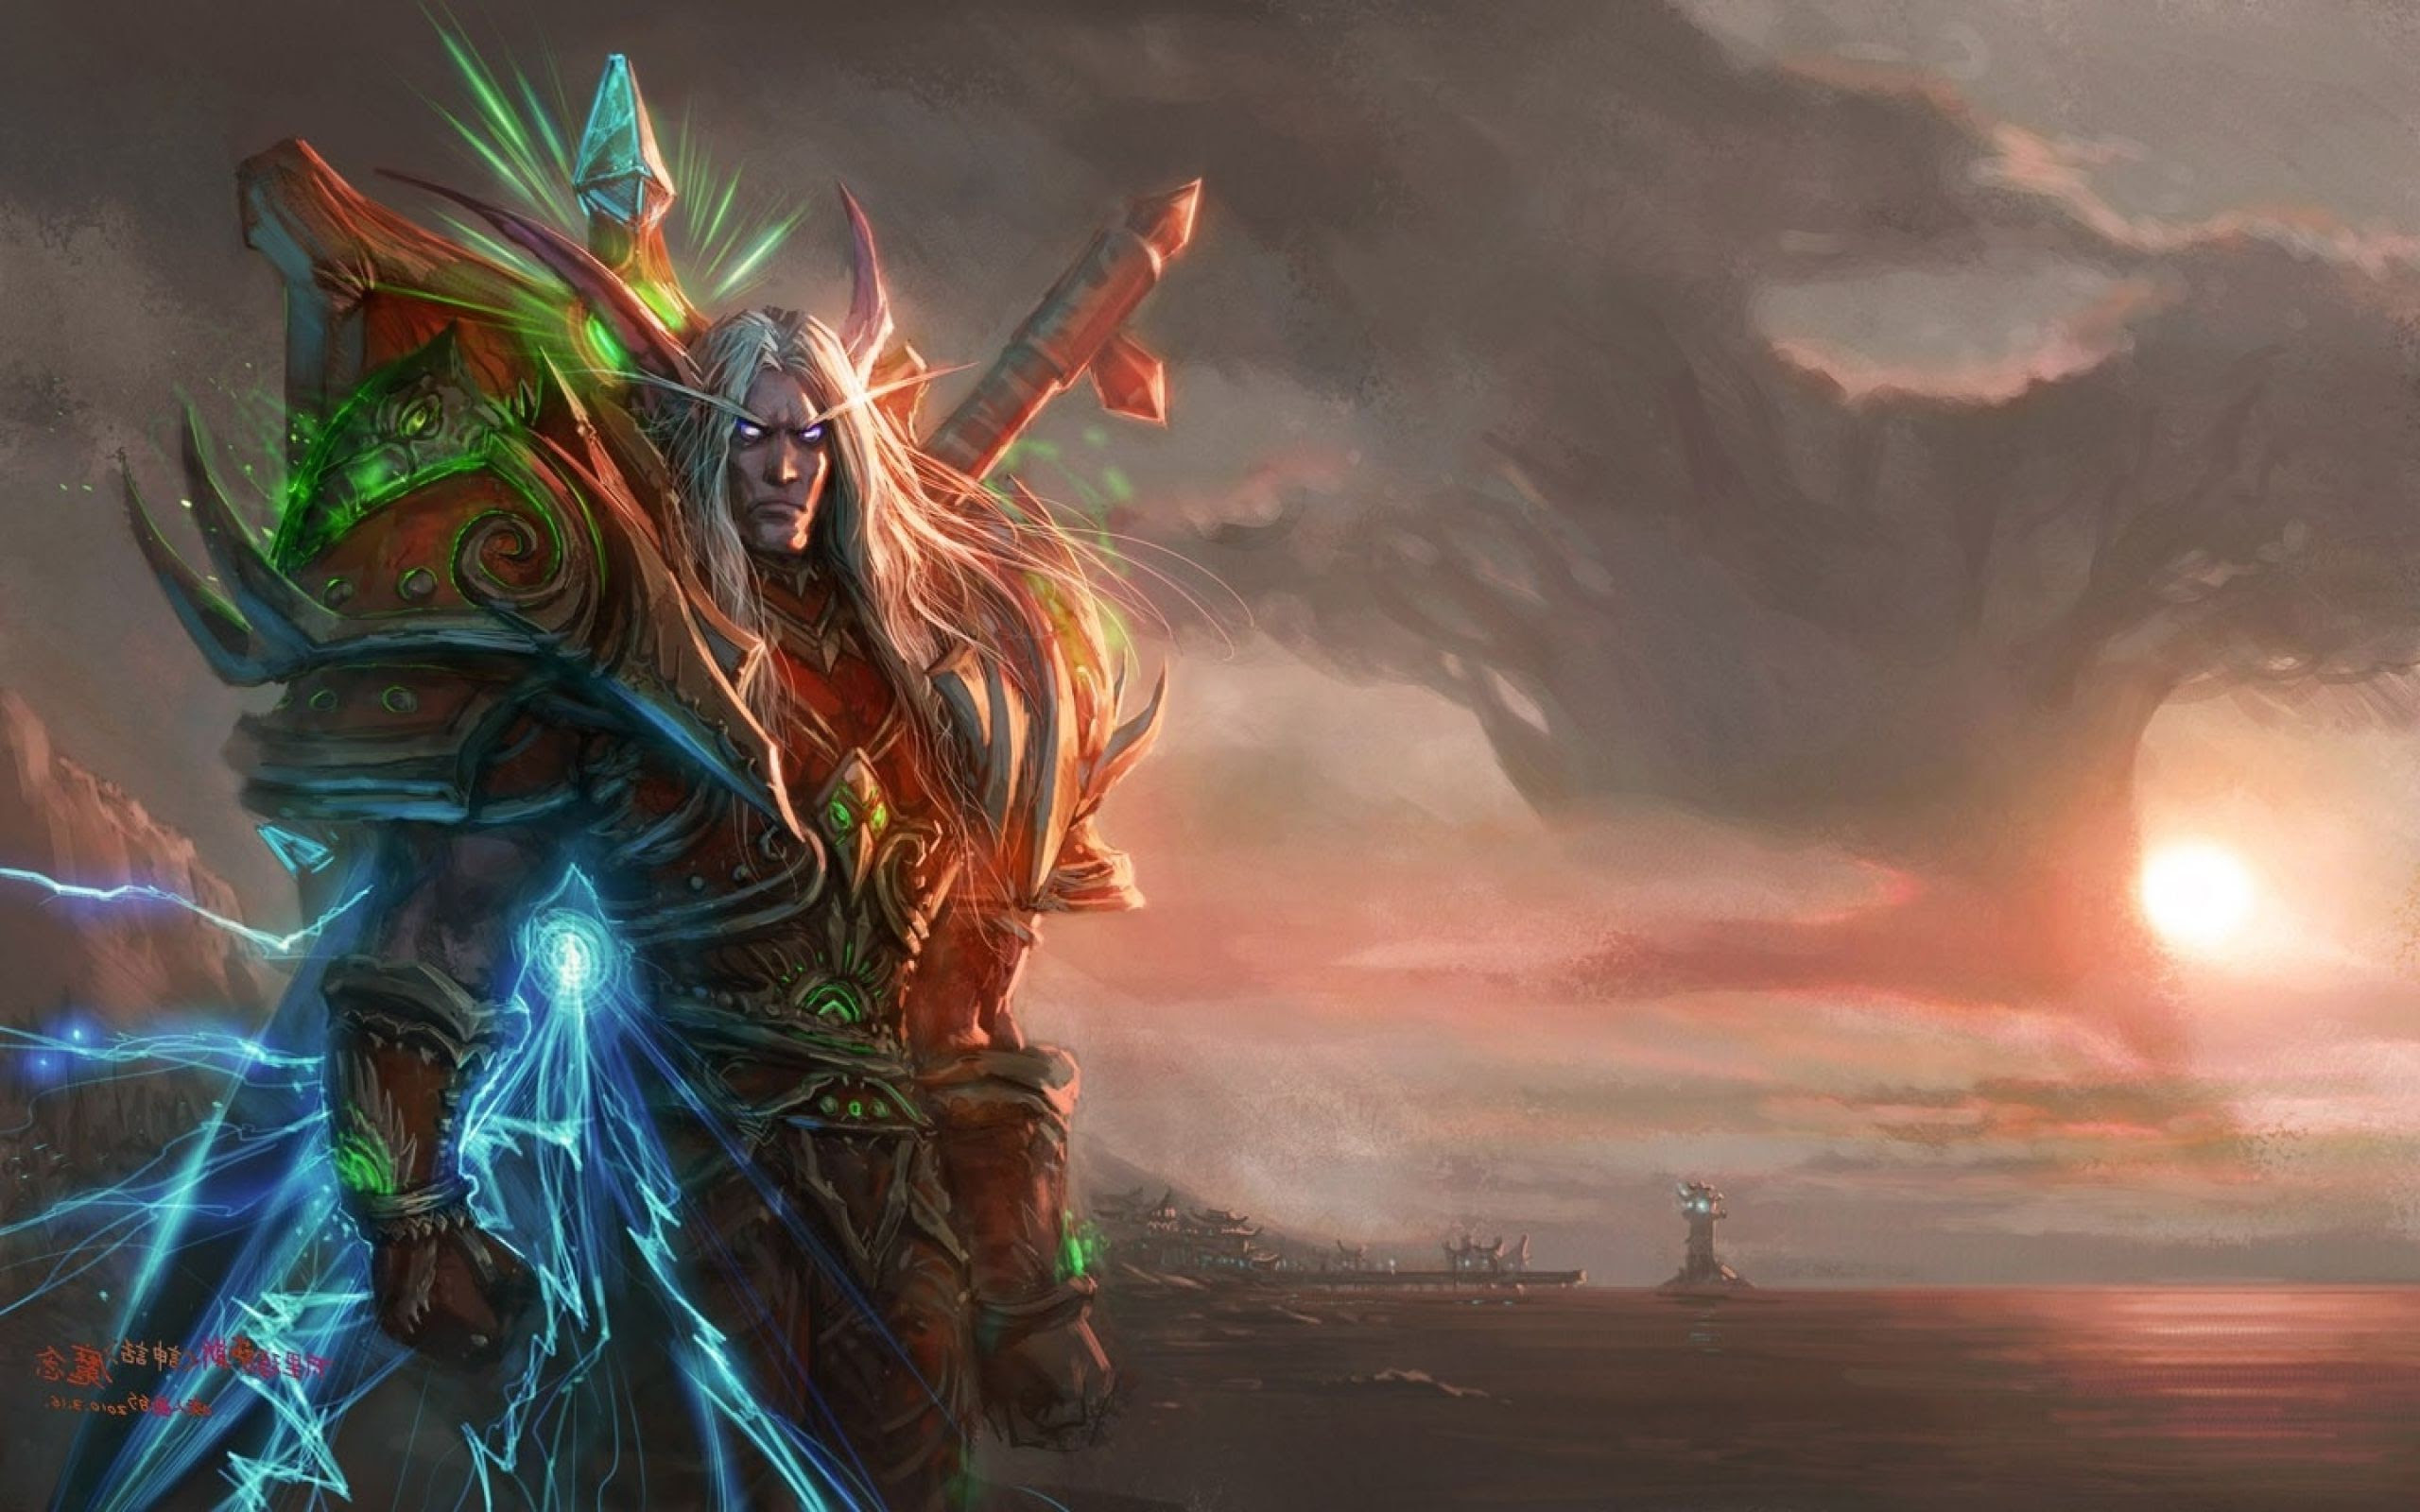 World Of Warcraft Wallpaper Hd Paladin 74 Images